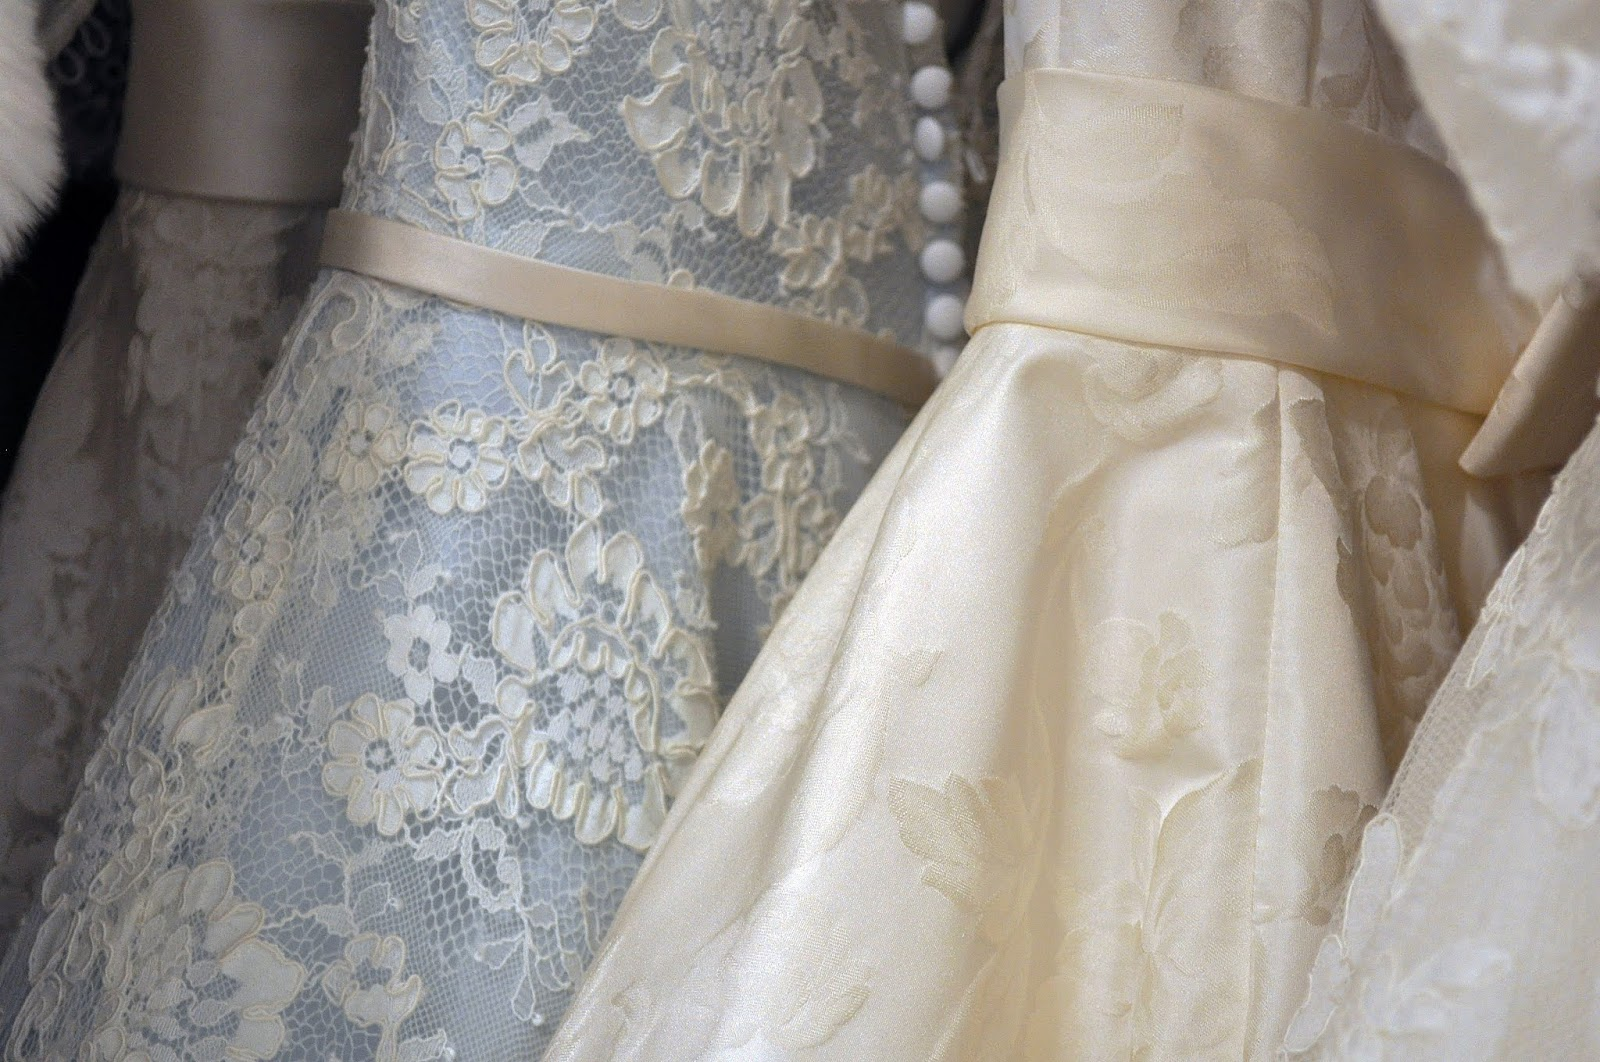 tips for beating wedding dress anxiety